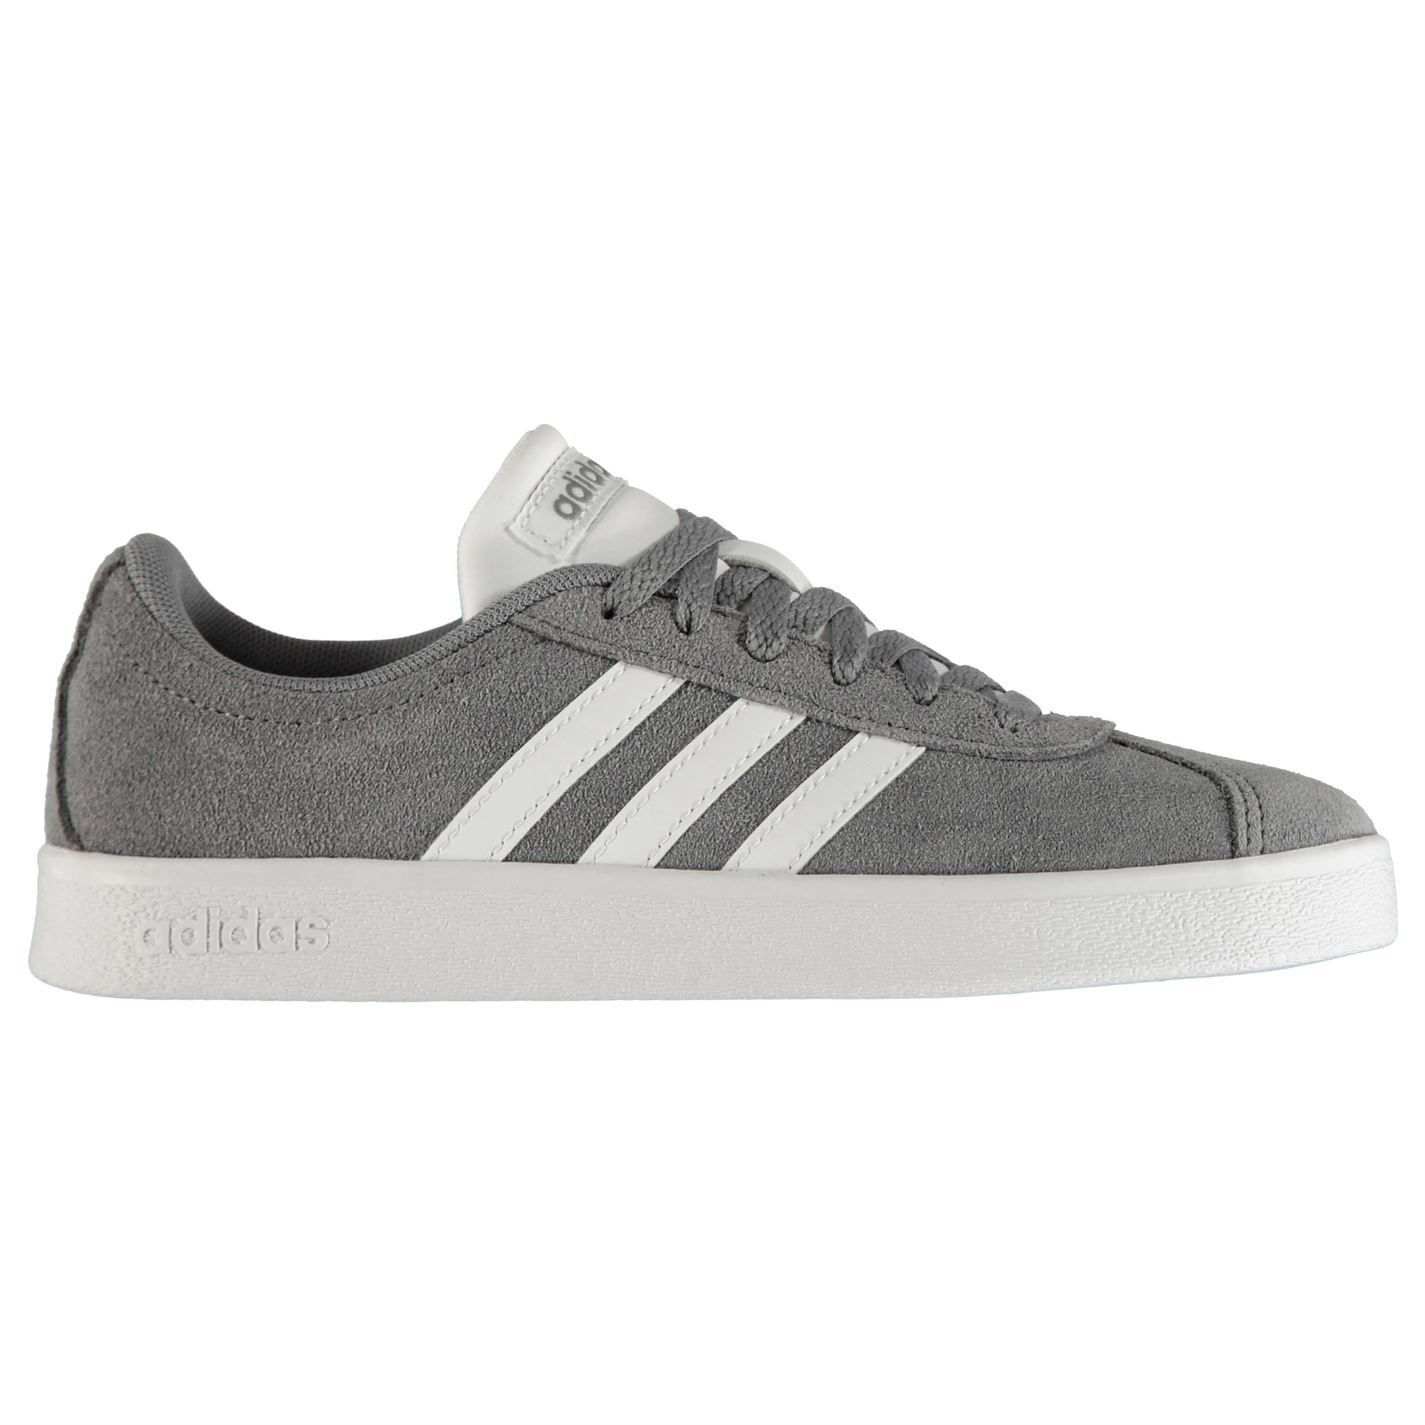 700104176cec Fastened Adidas Childrens Sneakers Laces Vl Stripe Suede Ebay Court YYBqC